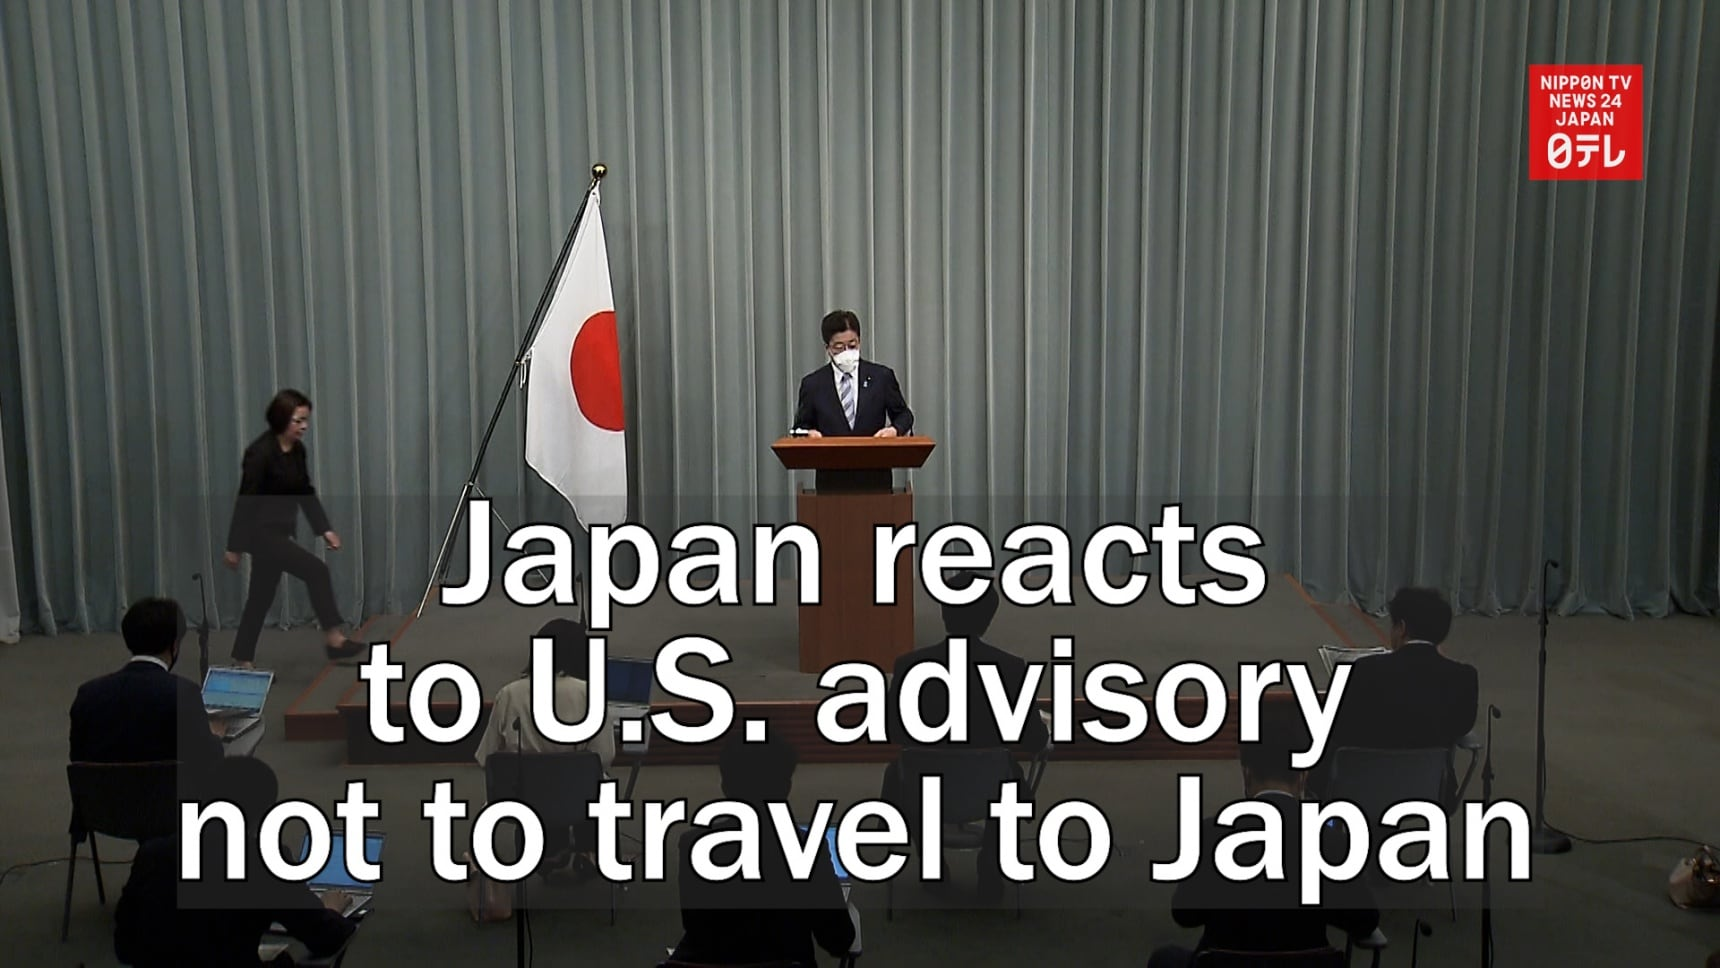 Japan reacts to U.S. advisory not to travel to